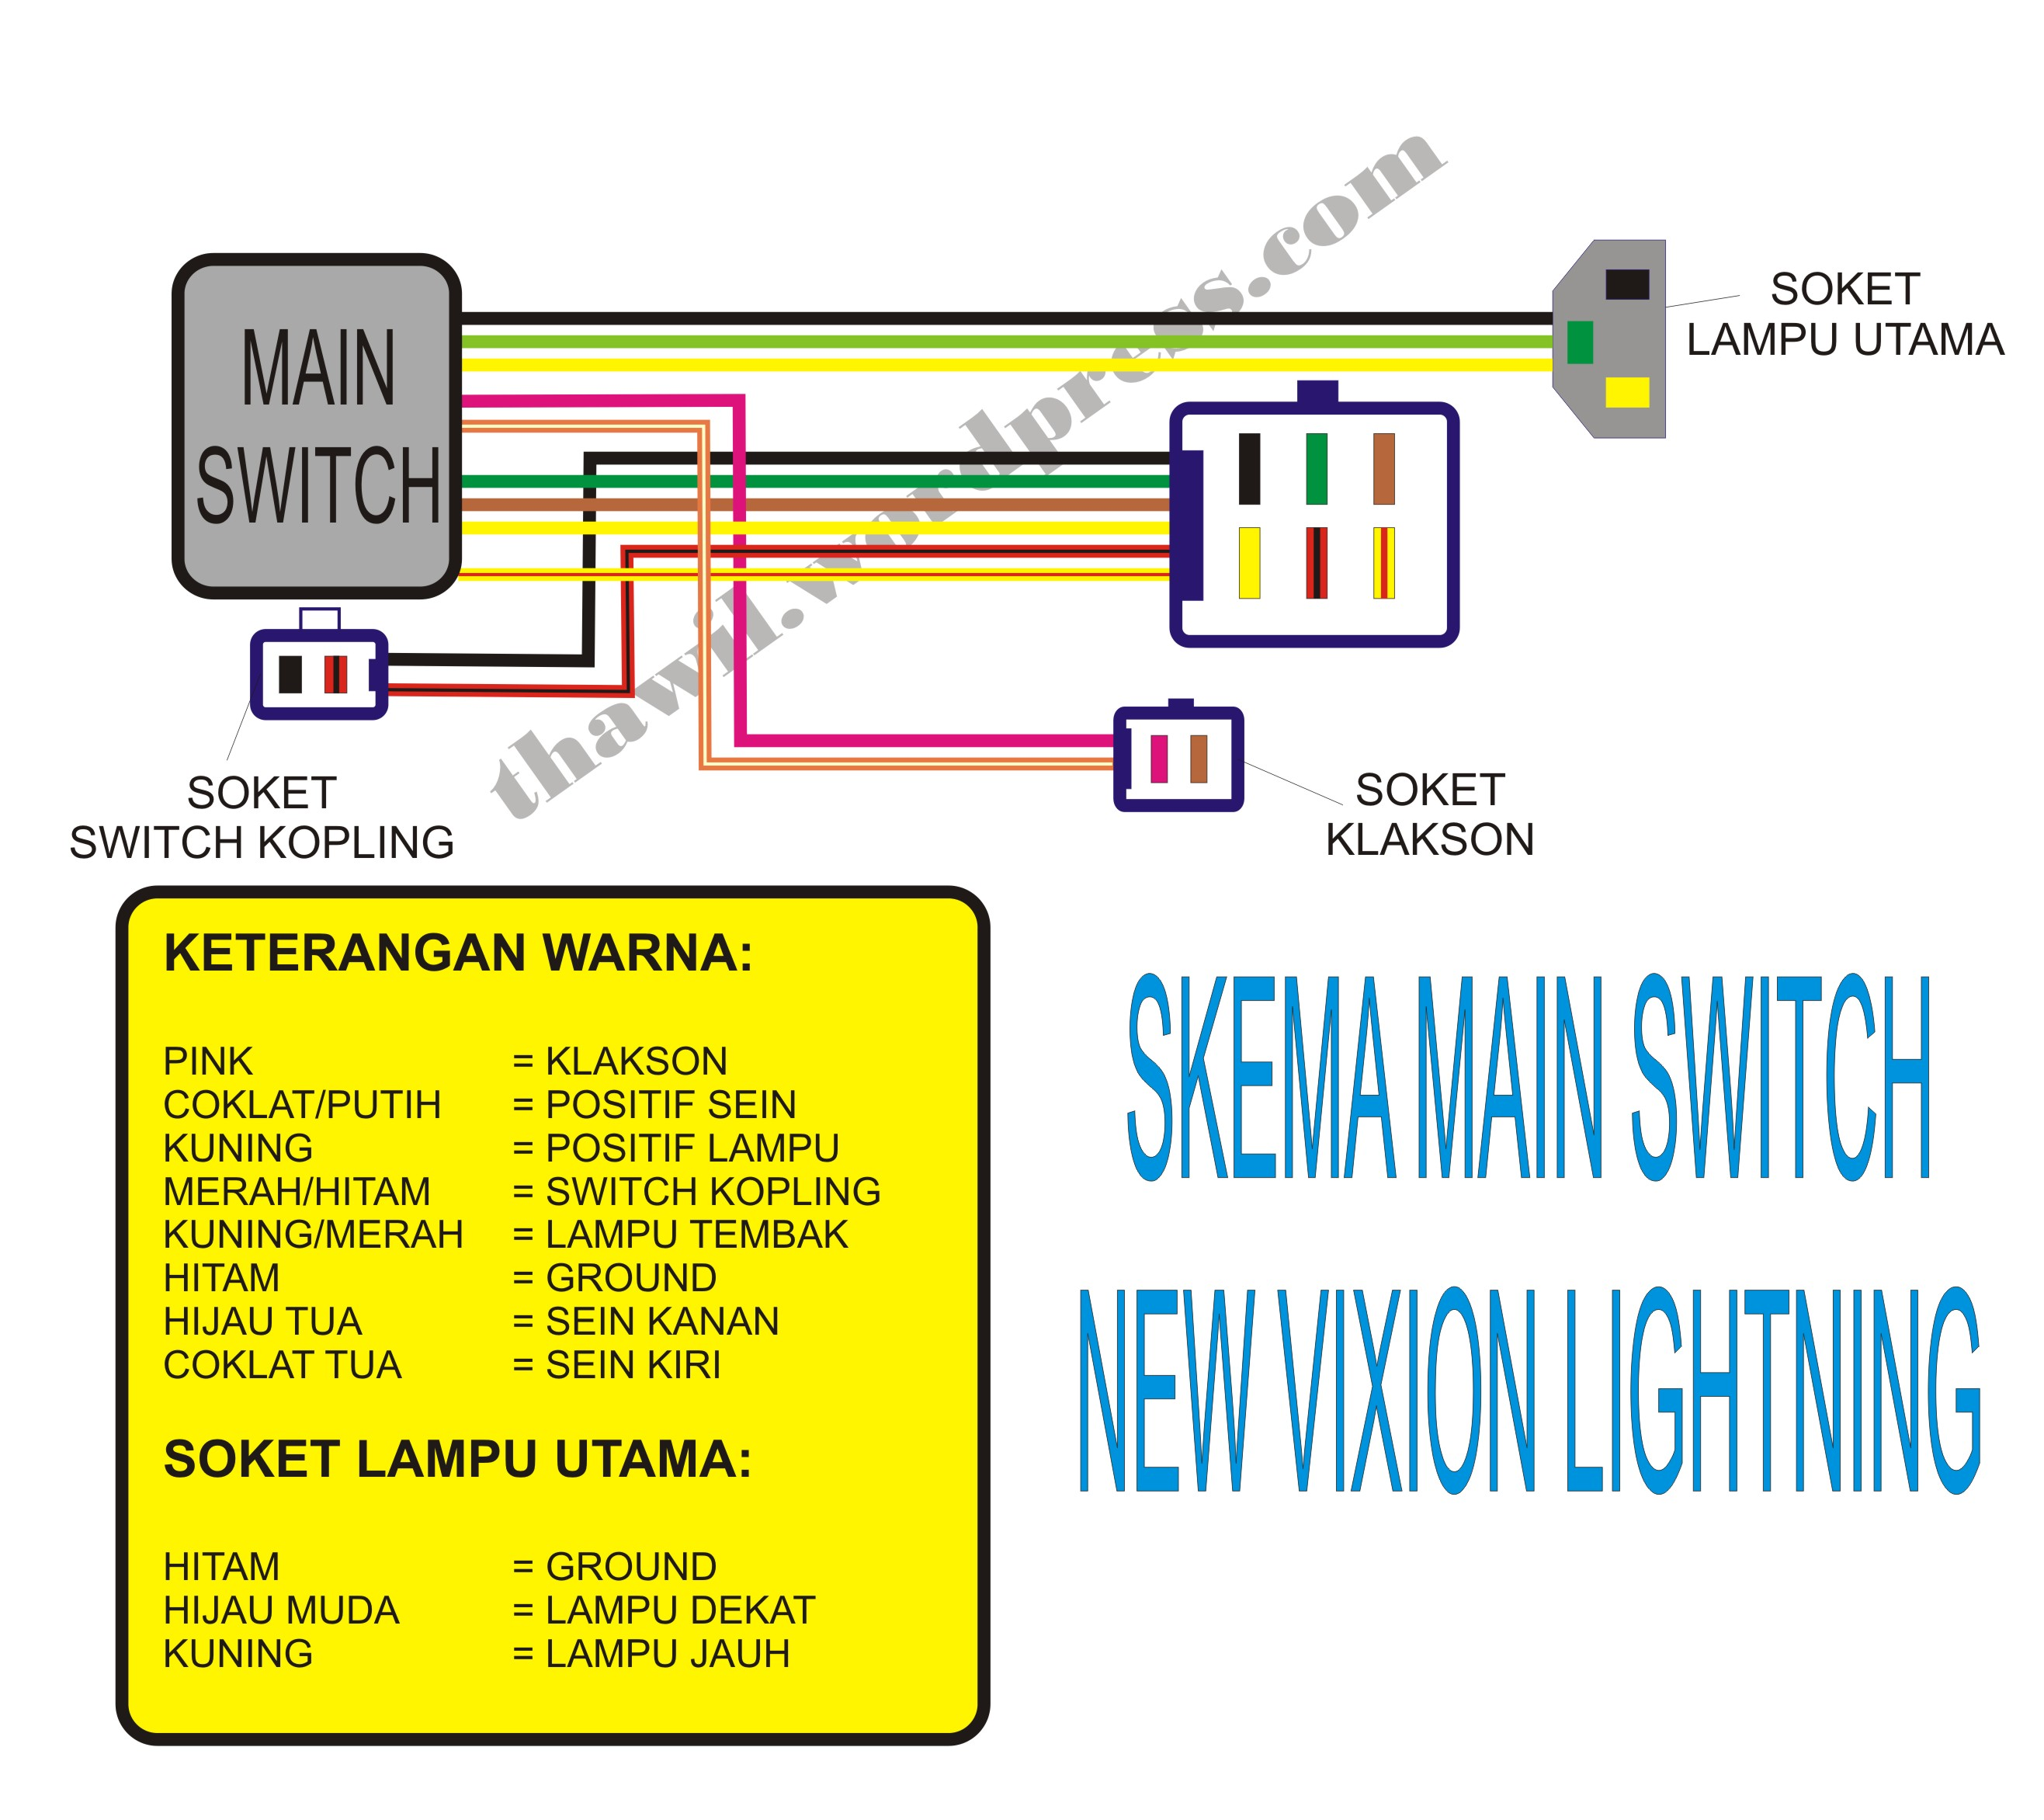 Wiring Diagram Ecu New Vixion : Wiring diagram kiprok vixion image collections